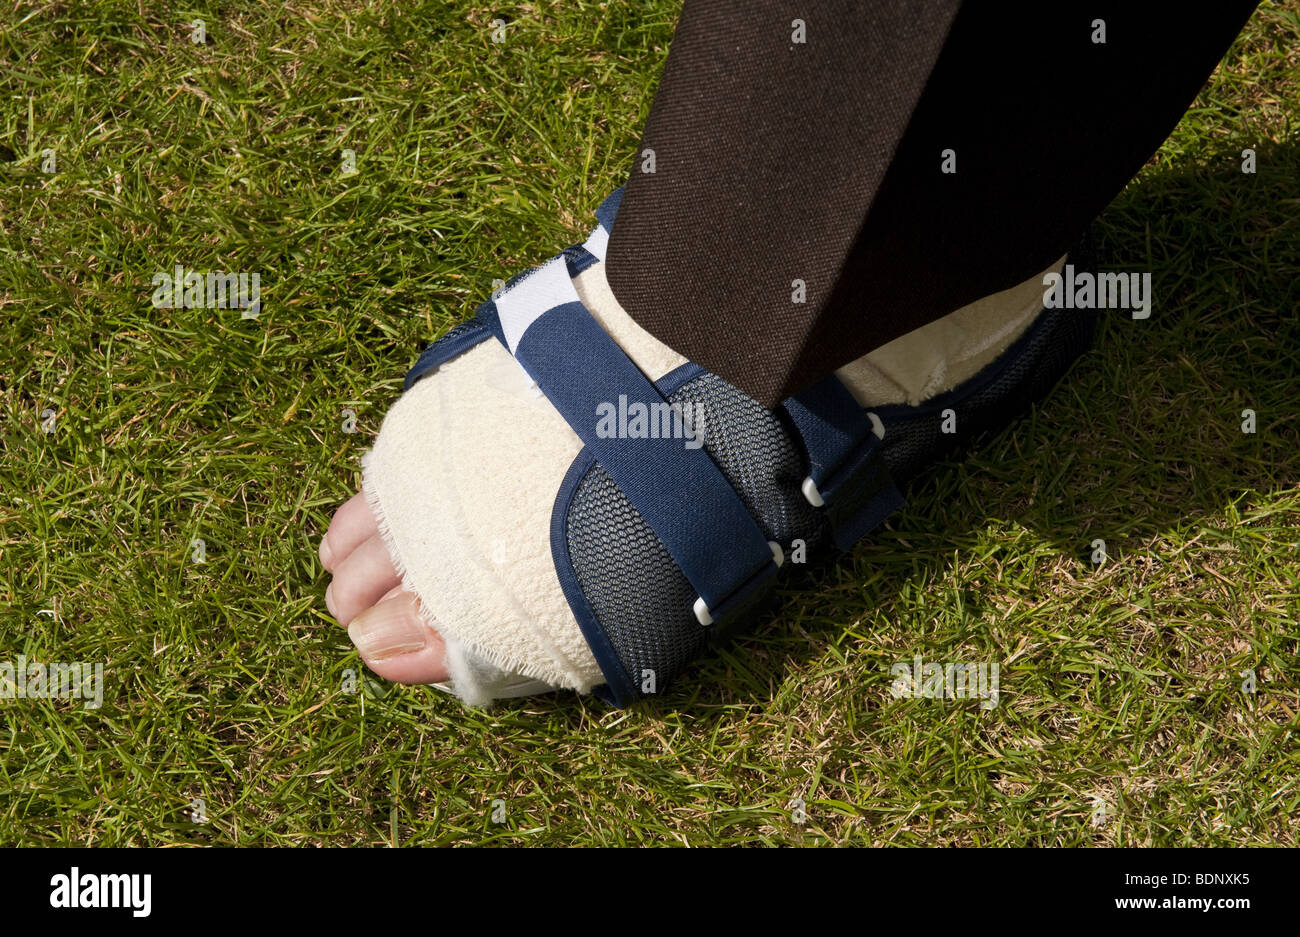 Suited man's foot bandaged up in velco on shoe after bunion surgery operation - Stock Image